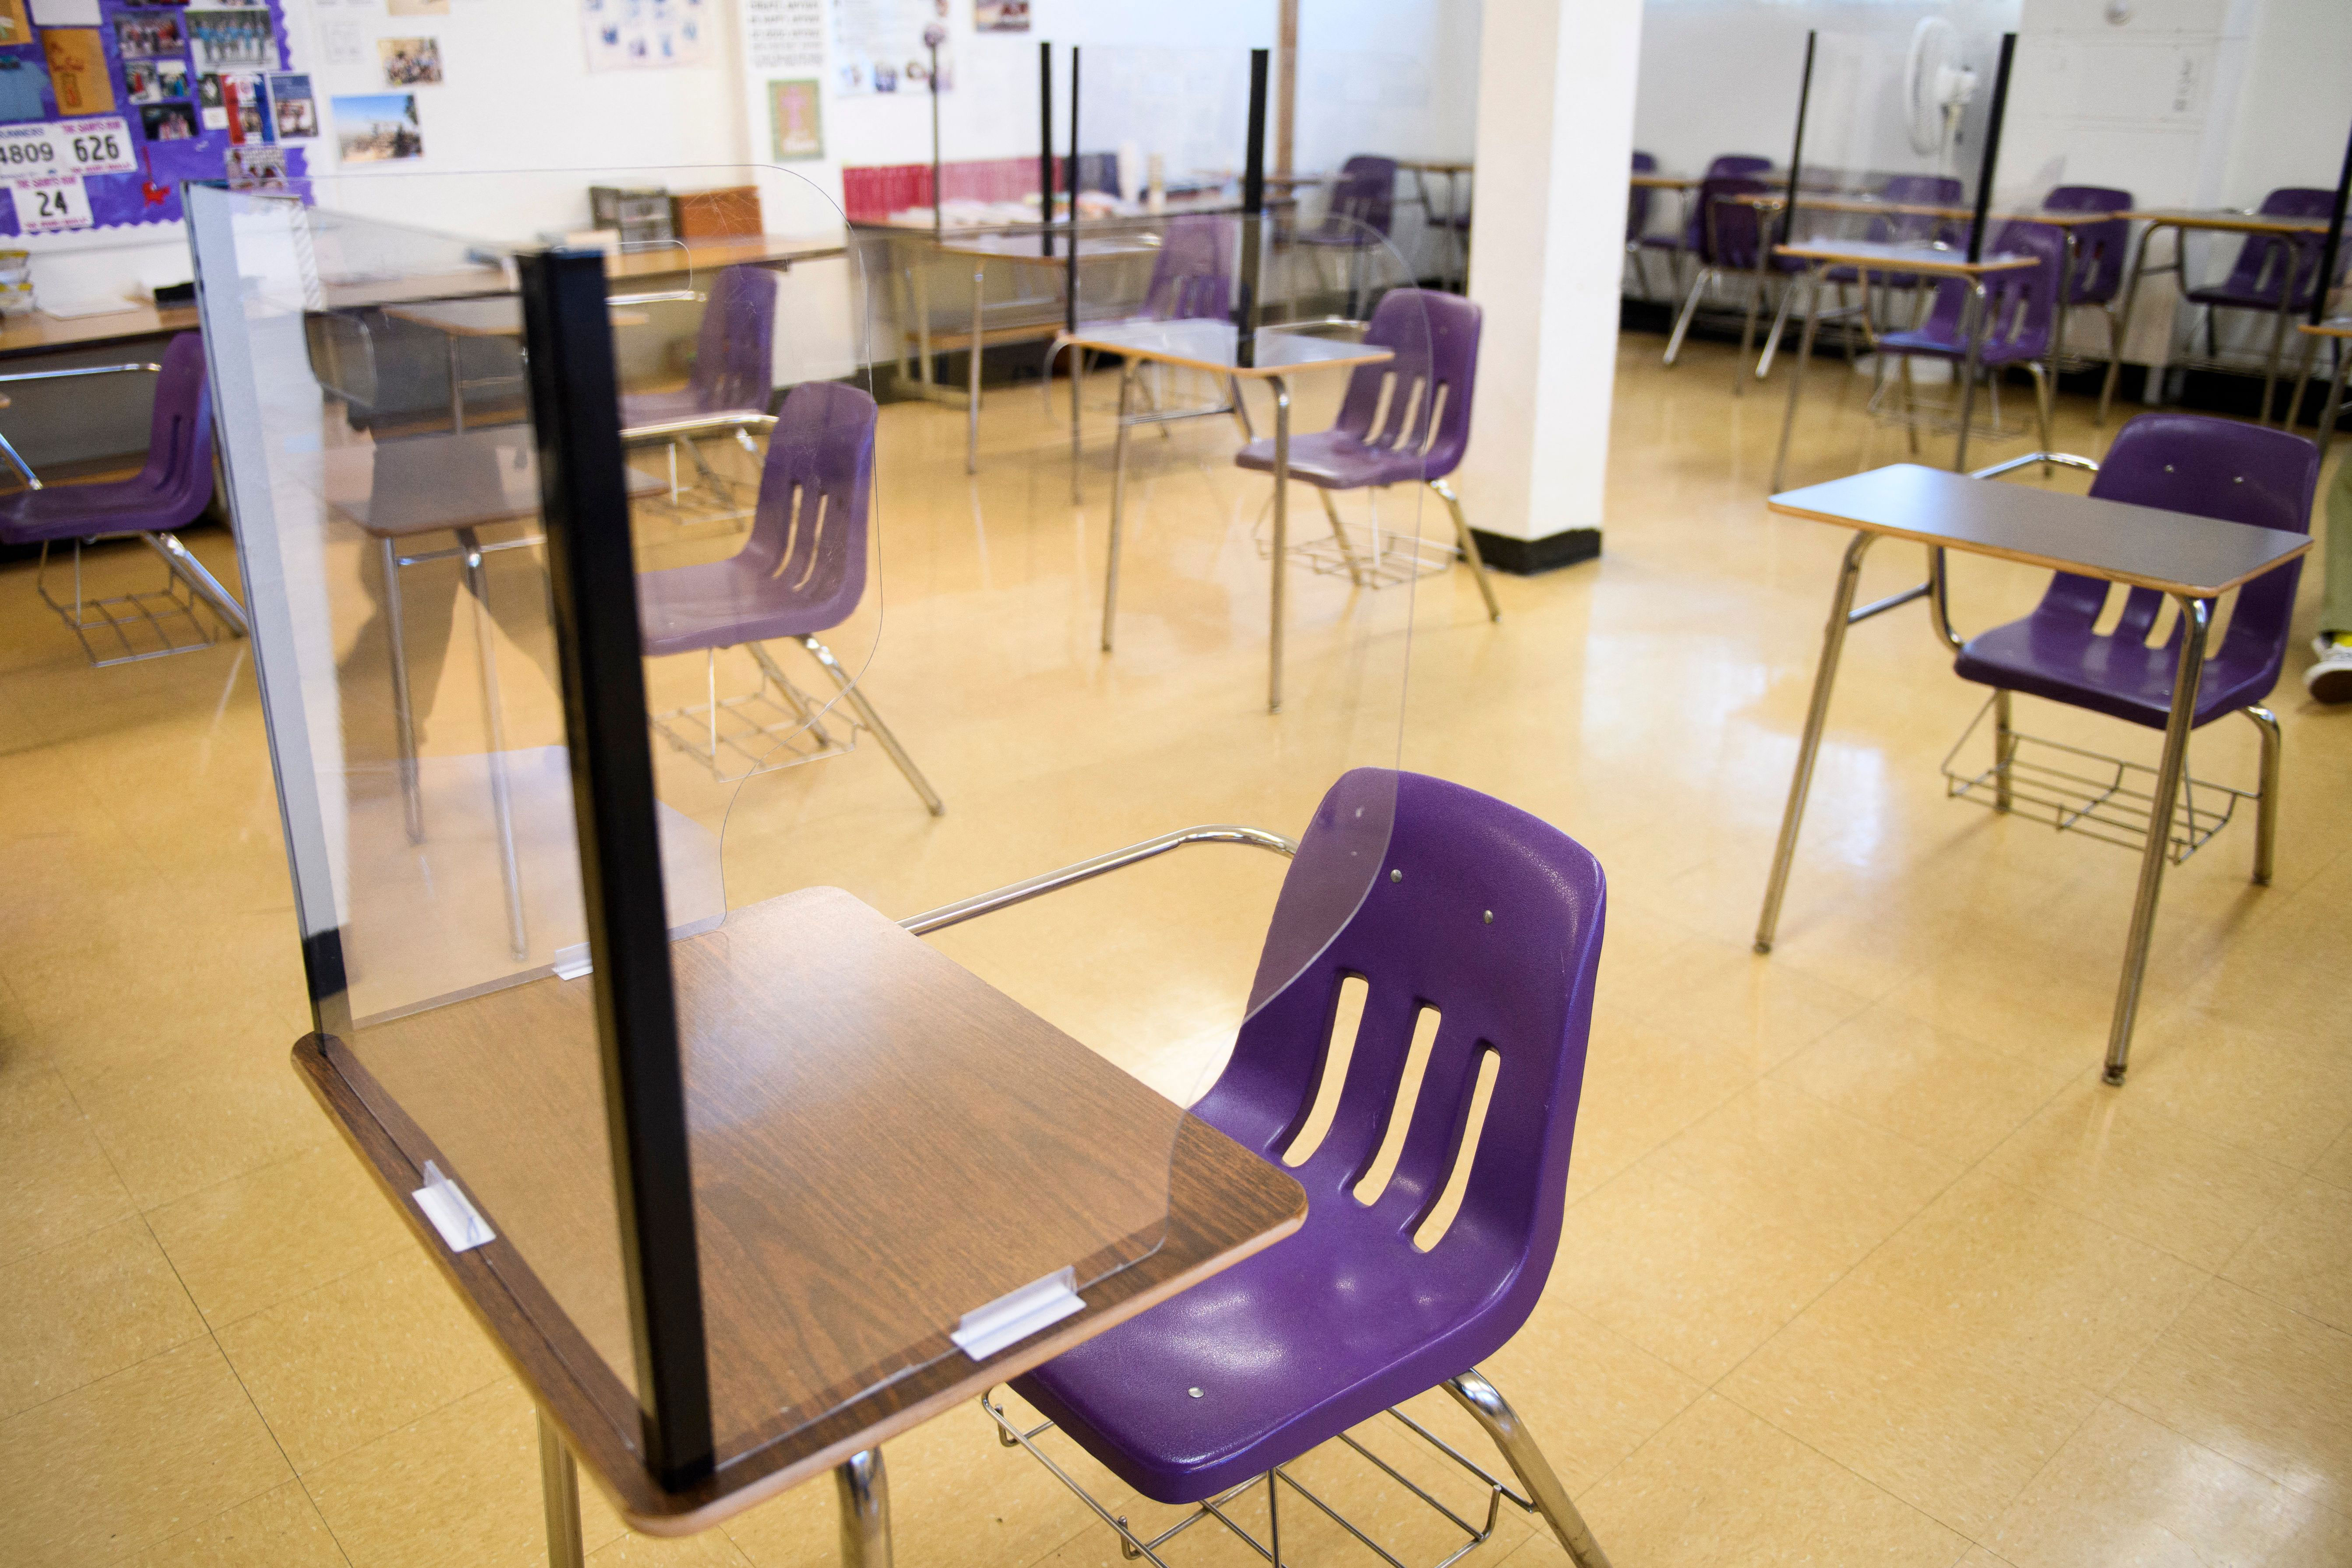 Plexiglass dividers surround desks at St. Anthony High School in Long Beach, California, on March 24.